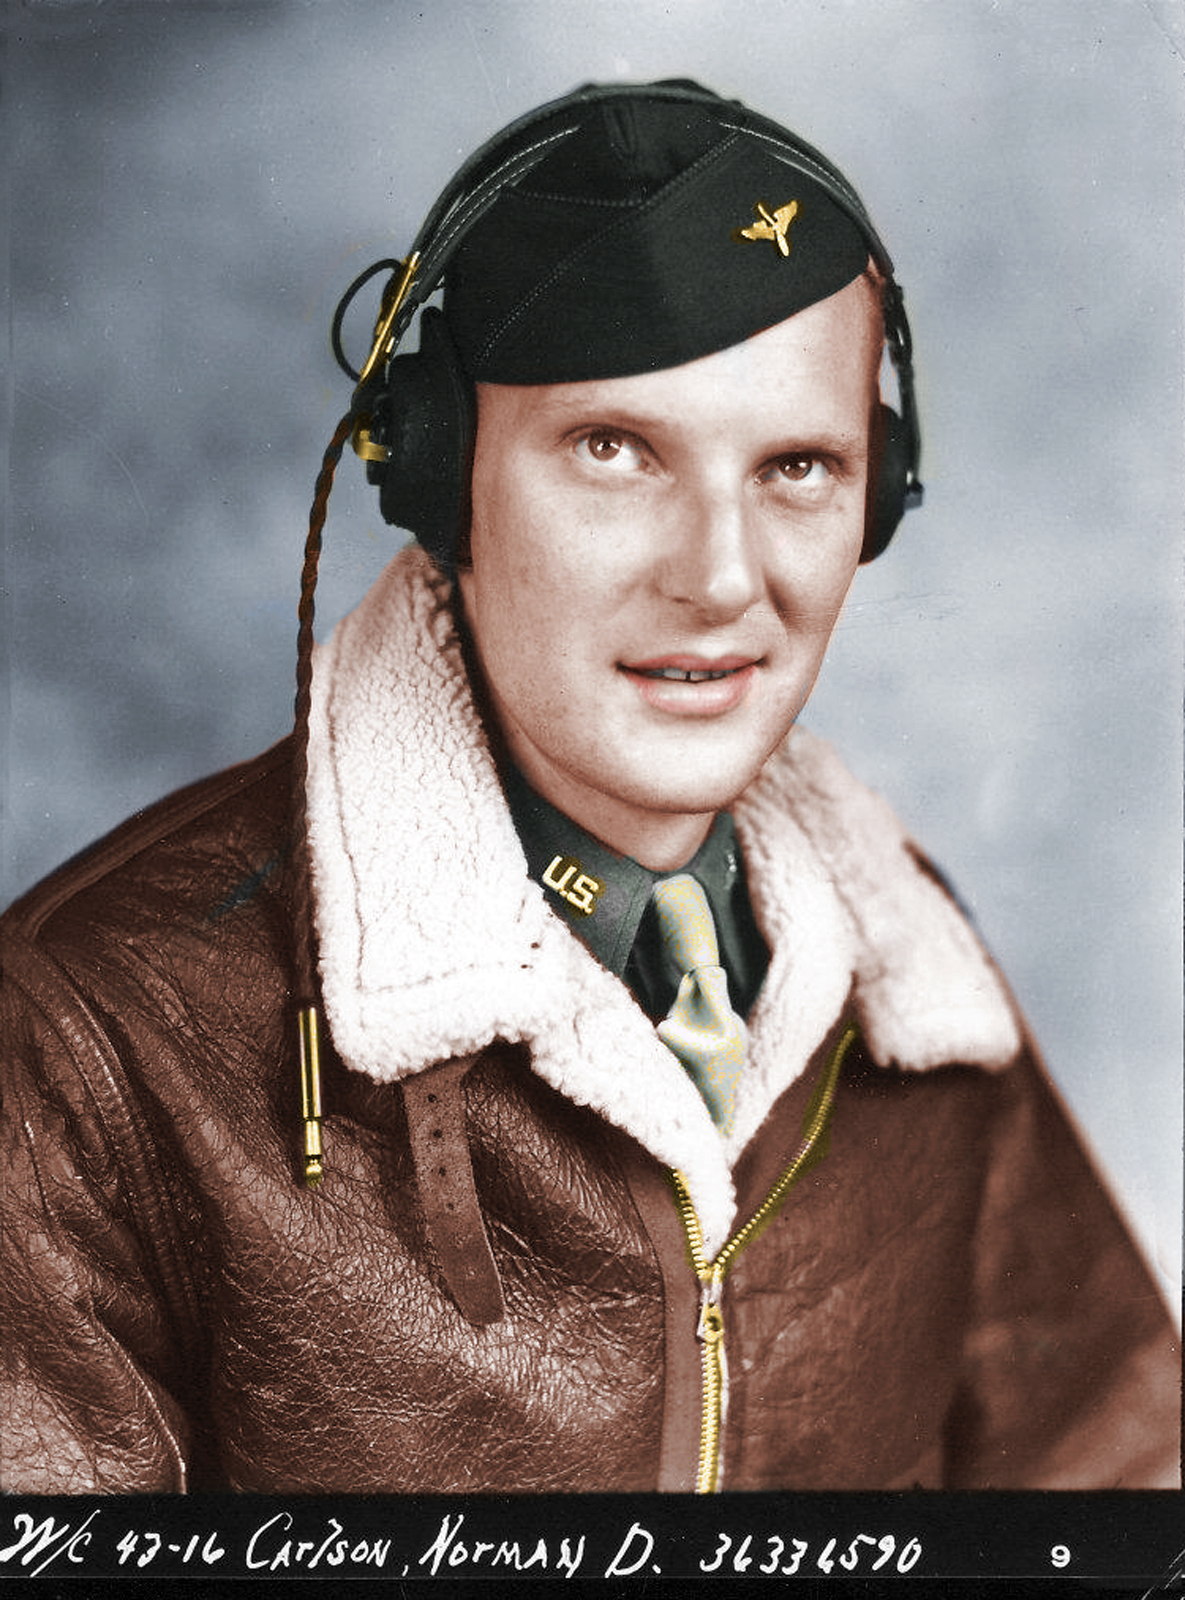 Carlson Colorized